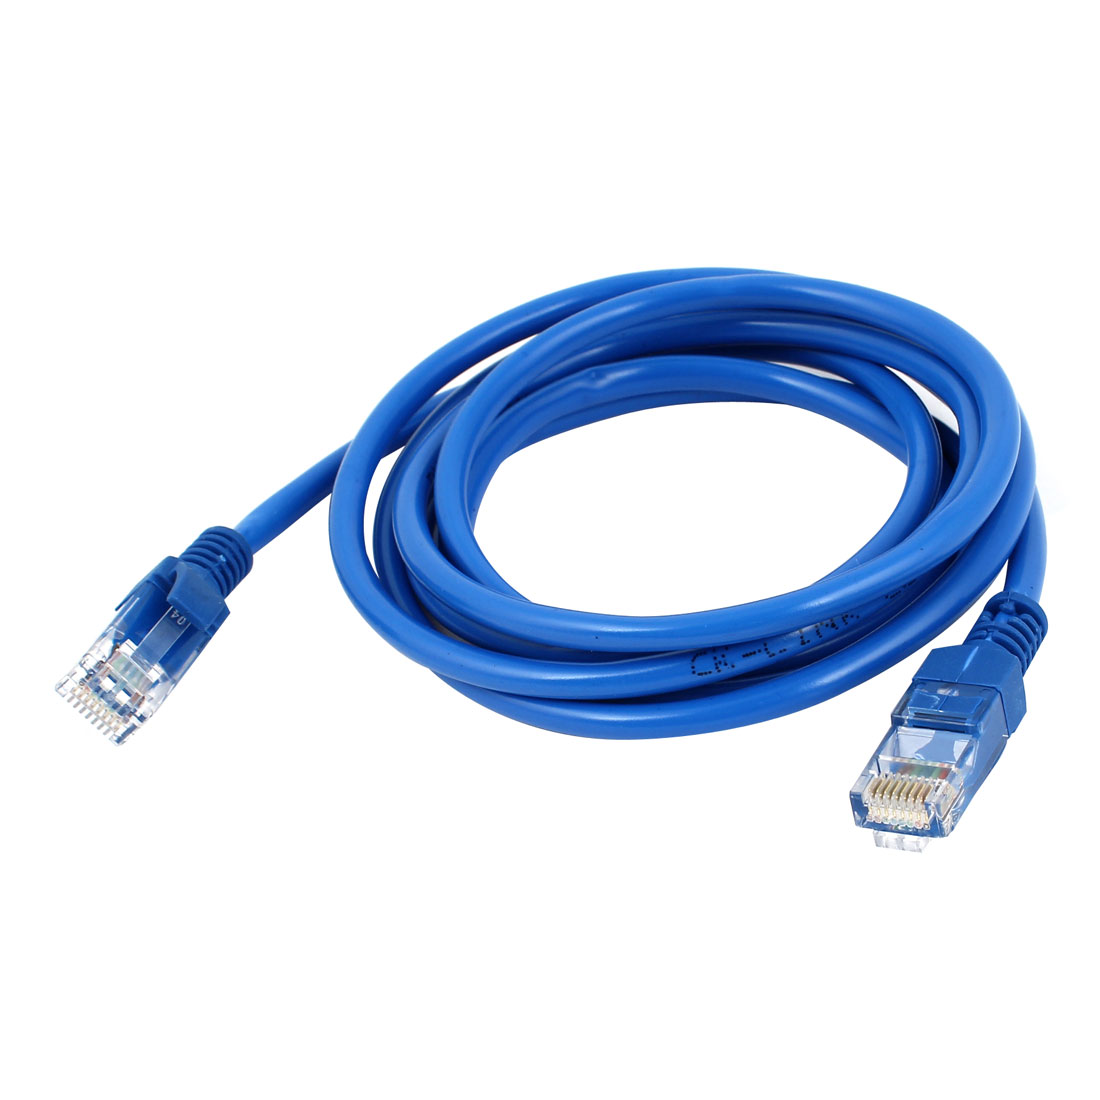 Unique Bargains 1.7M 5.5Ft CAT5e CAT5 RJ45 Male Connector Ethernet LAN Network Patch Cable Blue